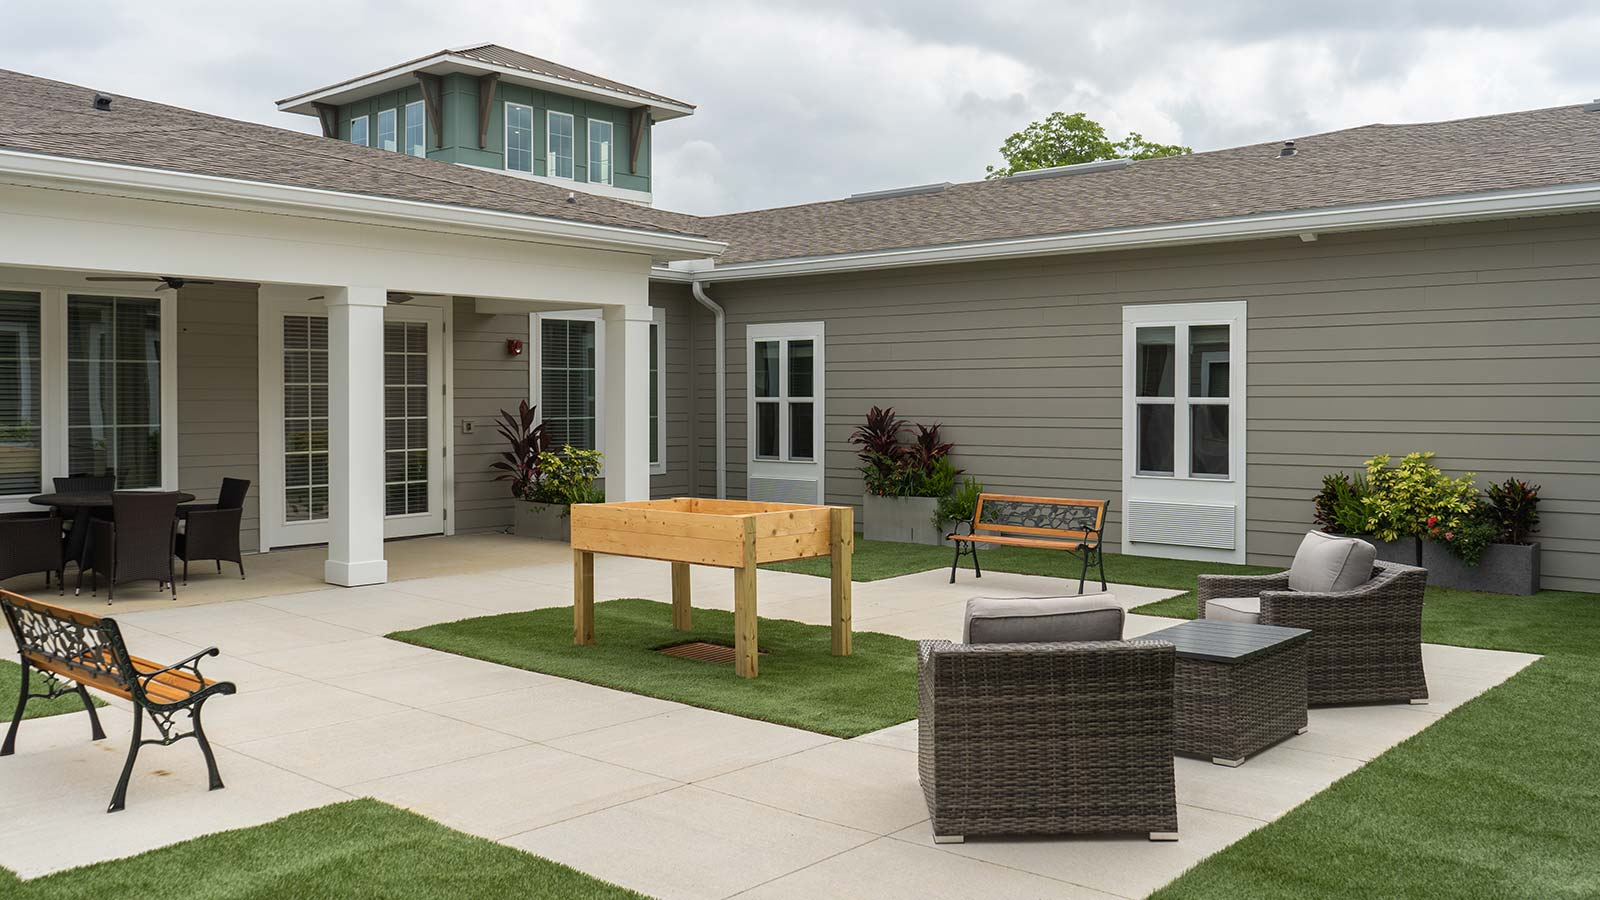 View Of Landscaped Courtyard With Outdoor Seating, Covered Patio And Raised Garden Beds